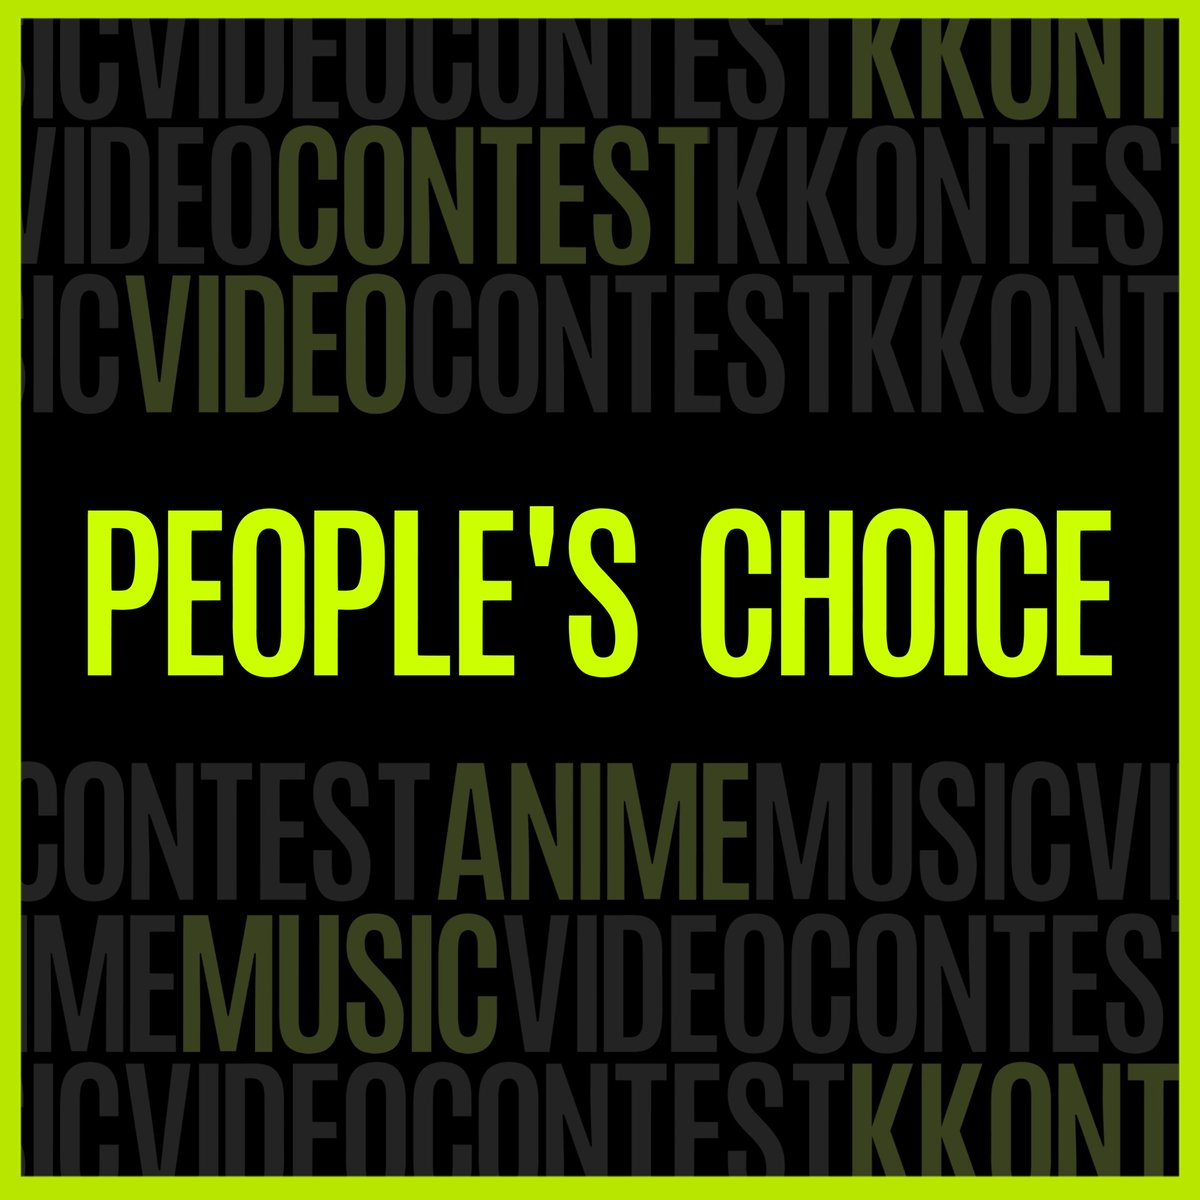 CATEGORY: PEOPLE's CHOICE  Additional category People will be asked to vote for their favorite AMV. Obviously all entries are in this category by default.  KKONTEST 2020: https://kkontest.pl/   #kkontest #amvcontest #amv #animemusicpic.twitter.com/WRZJFKY9UU